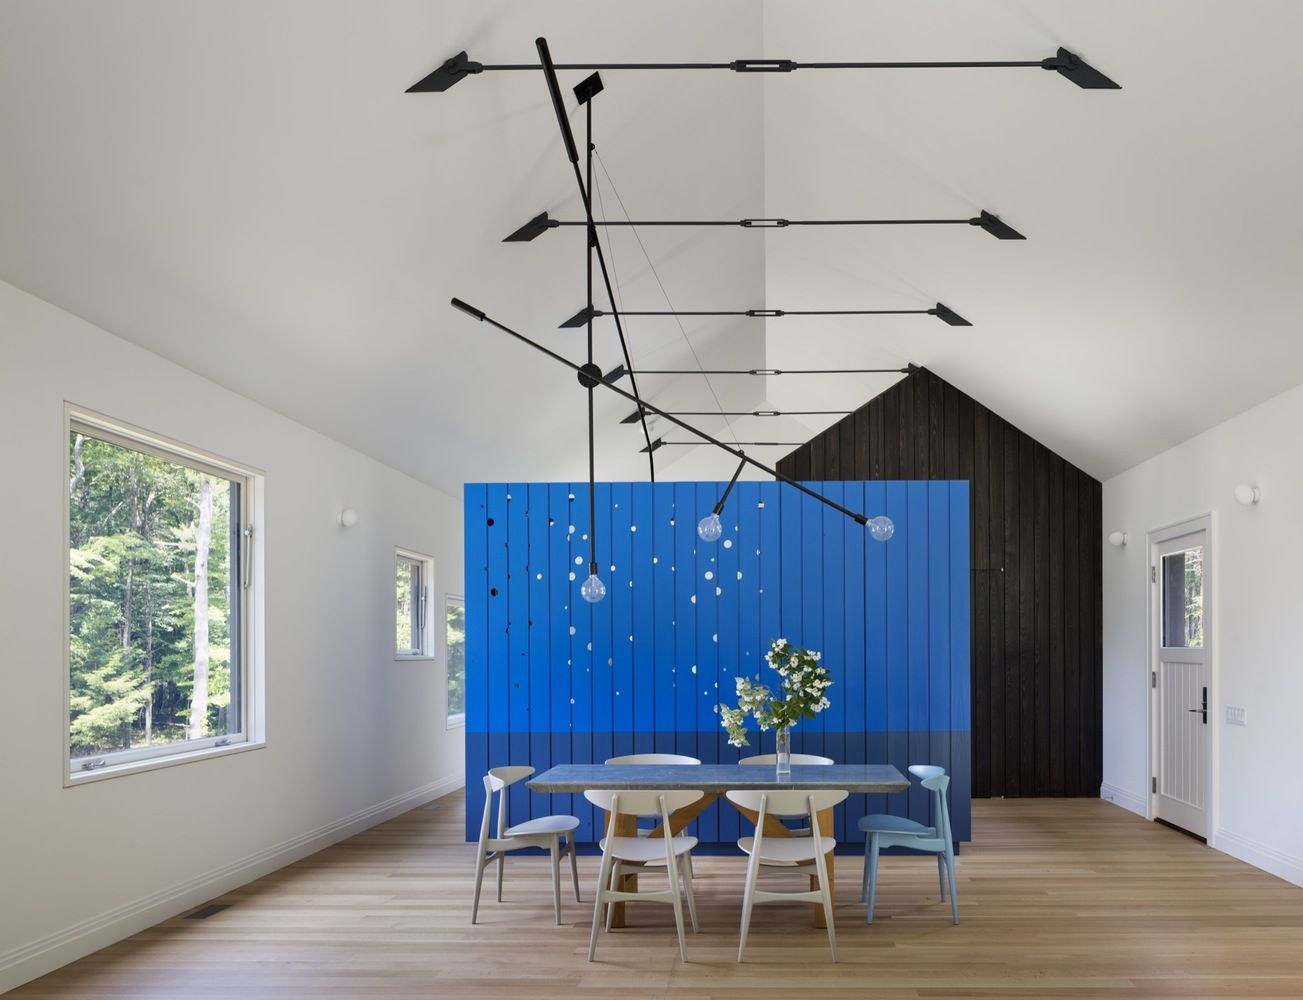 Gallery Of Undermountain O Neill Rose Architects 1 Interiors